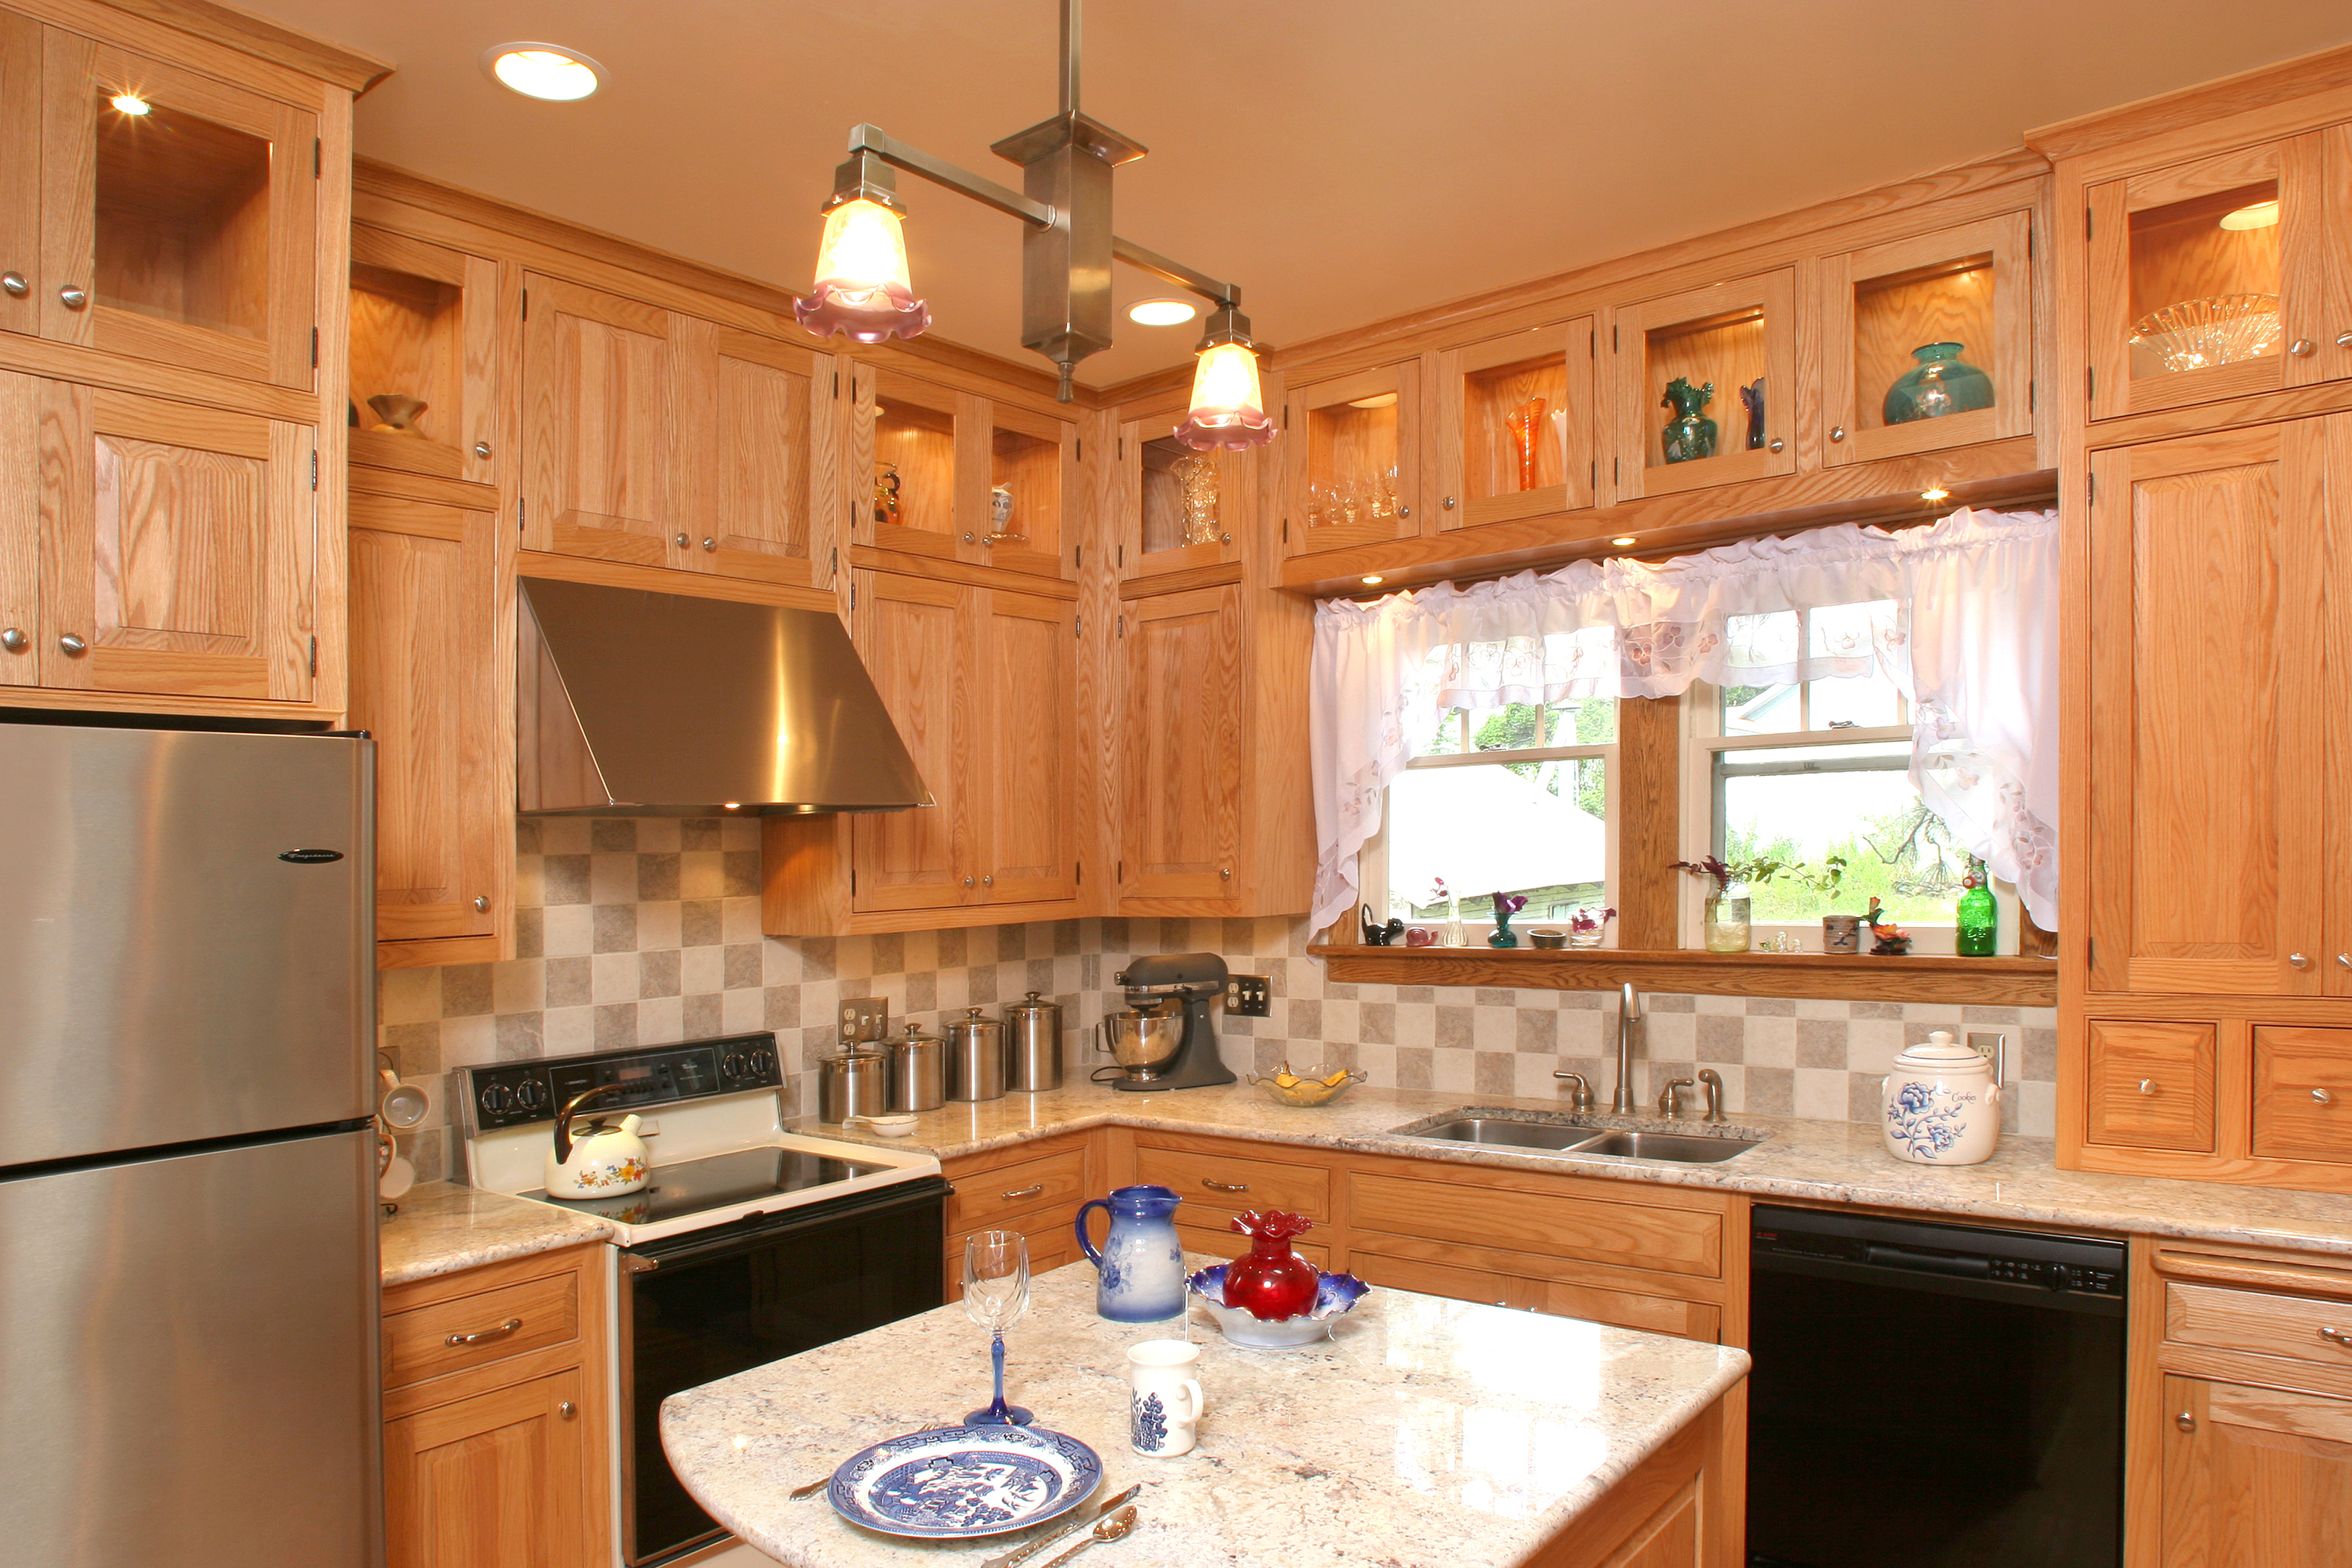 Thumb Kitchen Traditional Style Oak Light Color Raised Panel Flush Mount Gl At Top Small Island